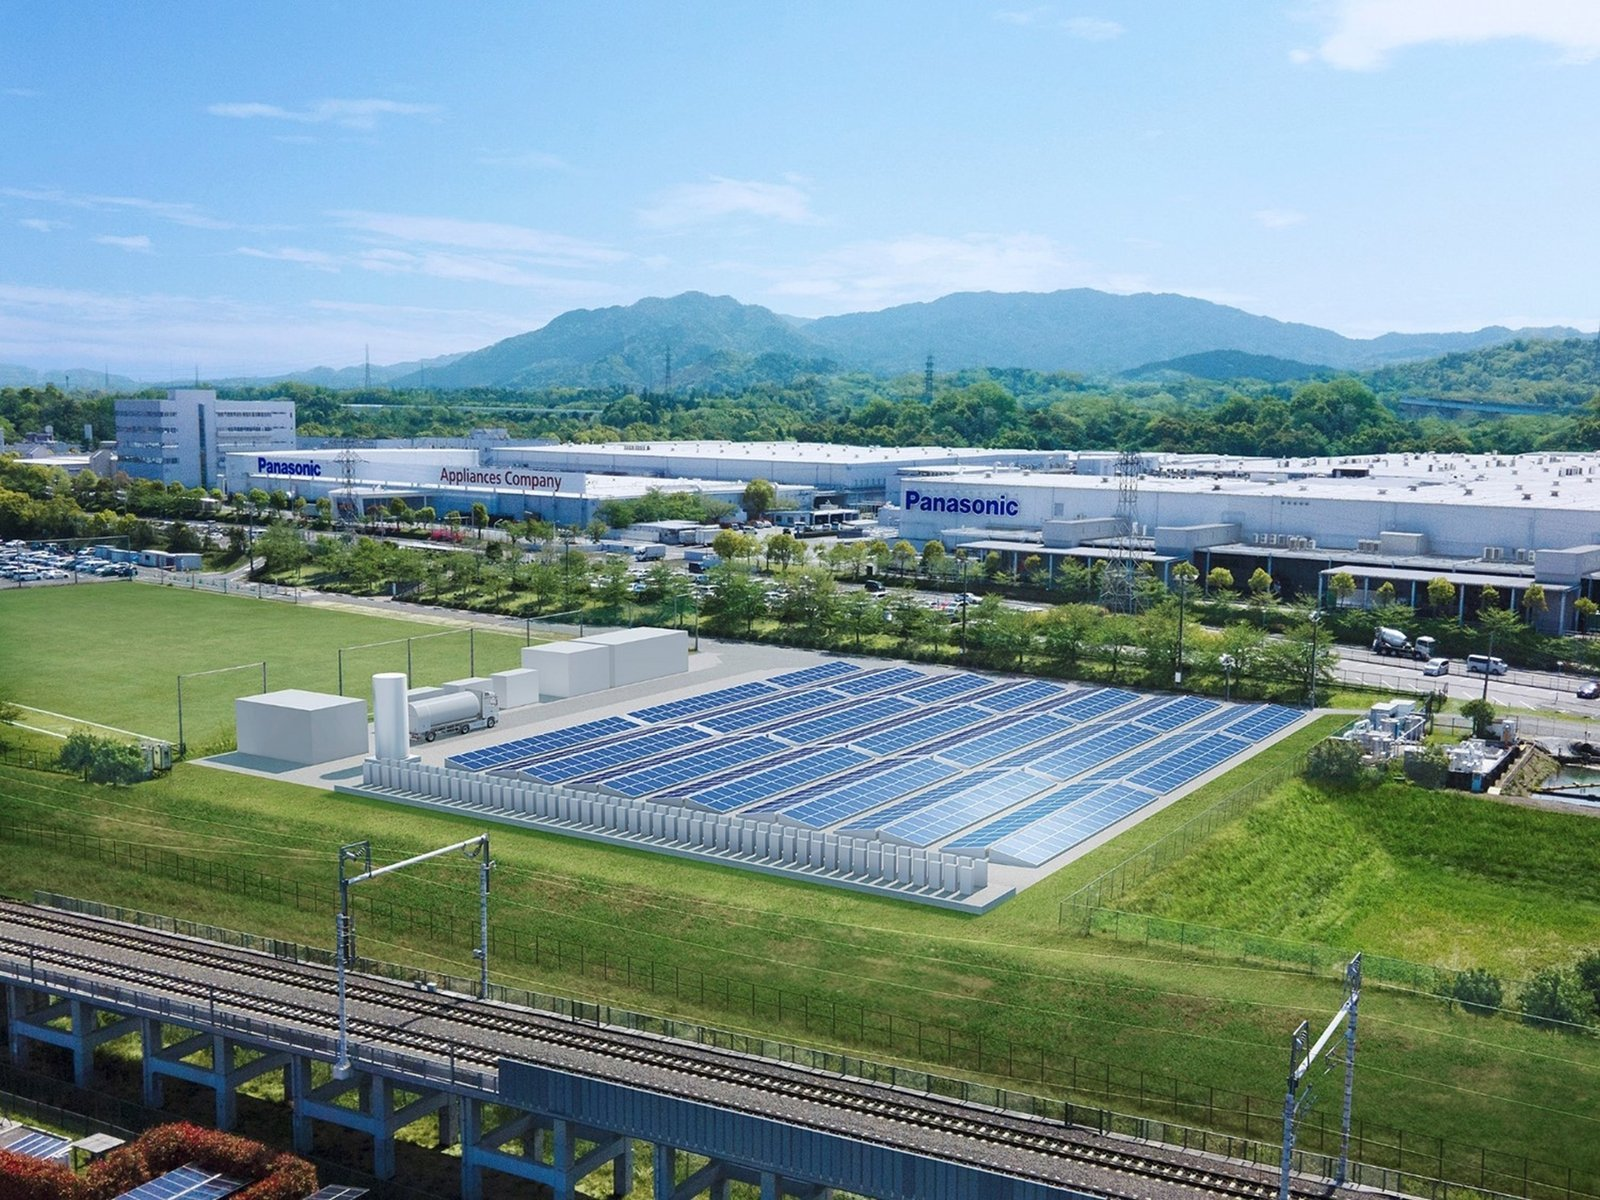 Image of the RE100 solution demonstration facility to be constructed at Panasonic's Kusatsu site in Shiga Prefecture